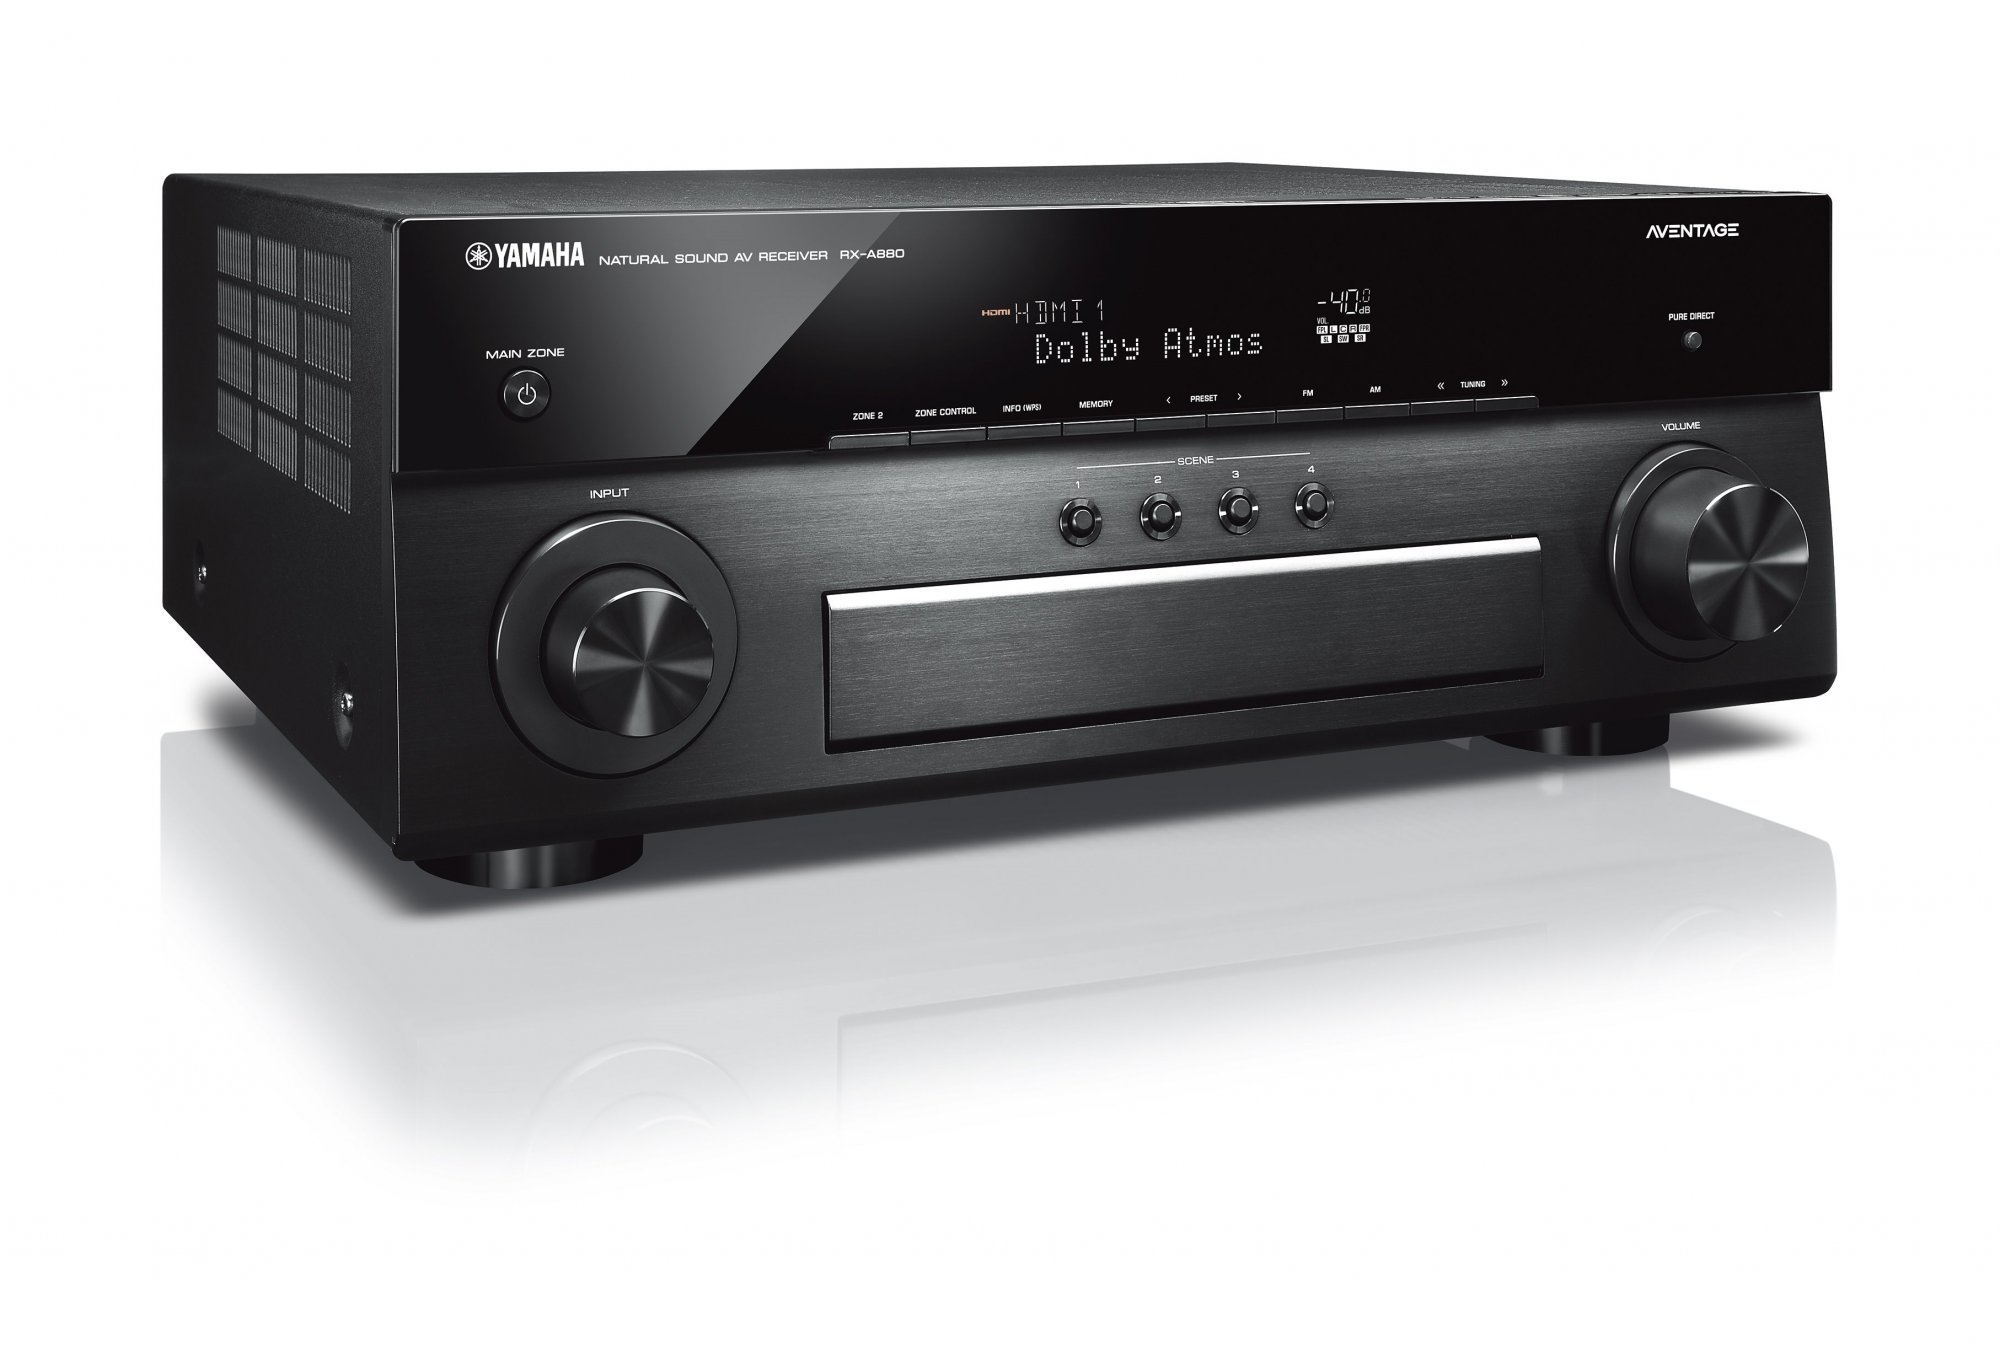 Yamaha Aventage RX-A880 Receiver